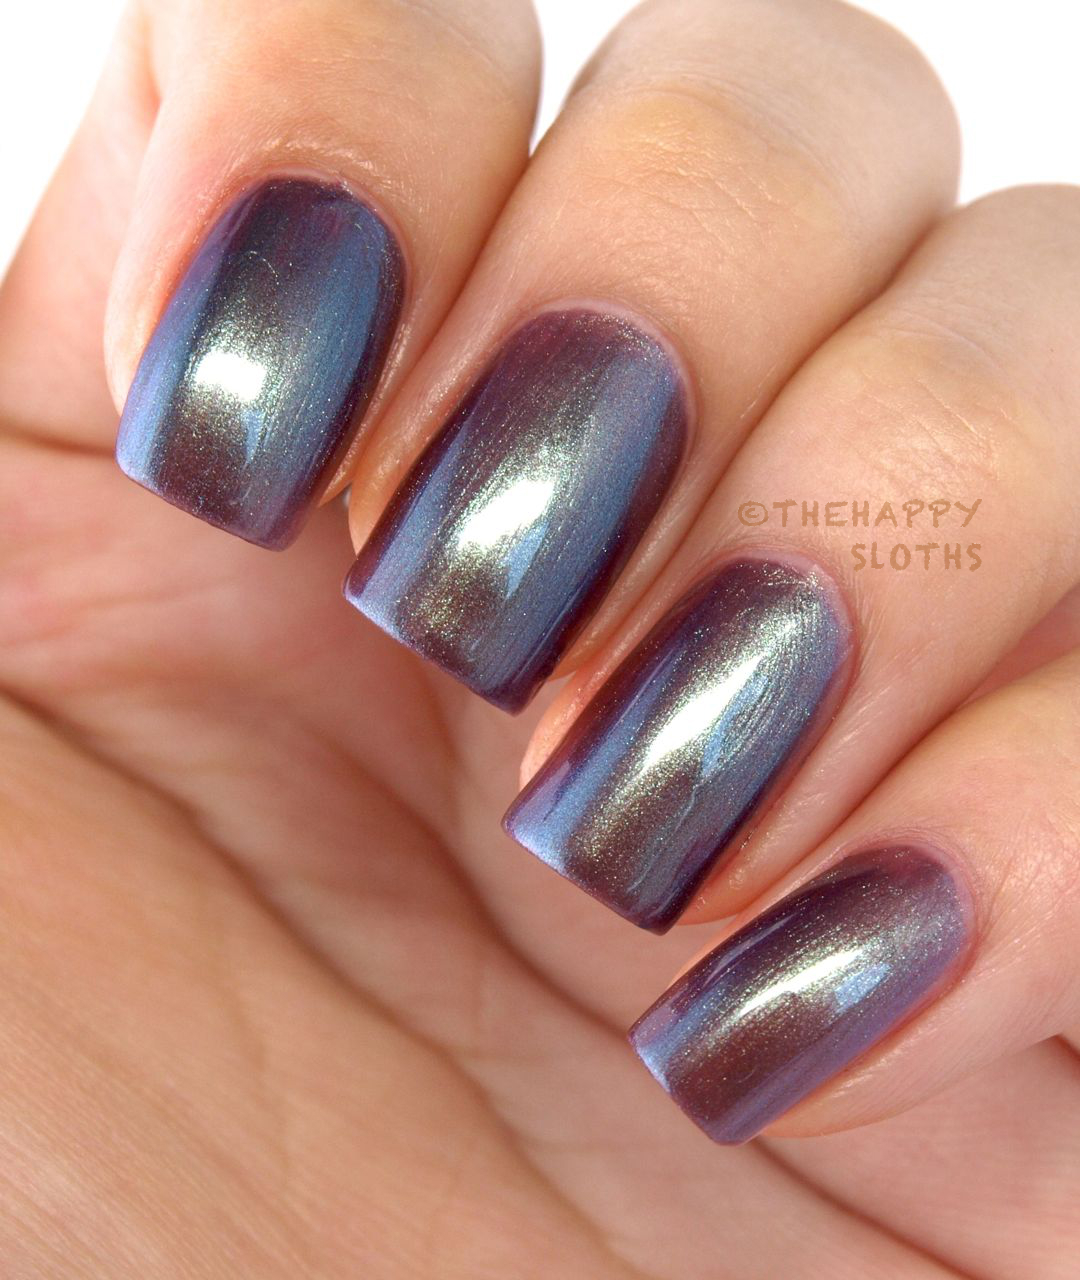 Deborah Lippmann Holiday 2014 Collection Dream Weaver Review and Swatches